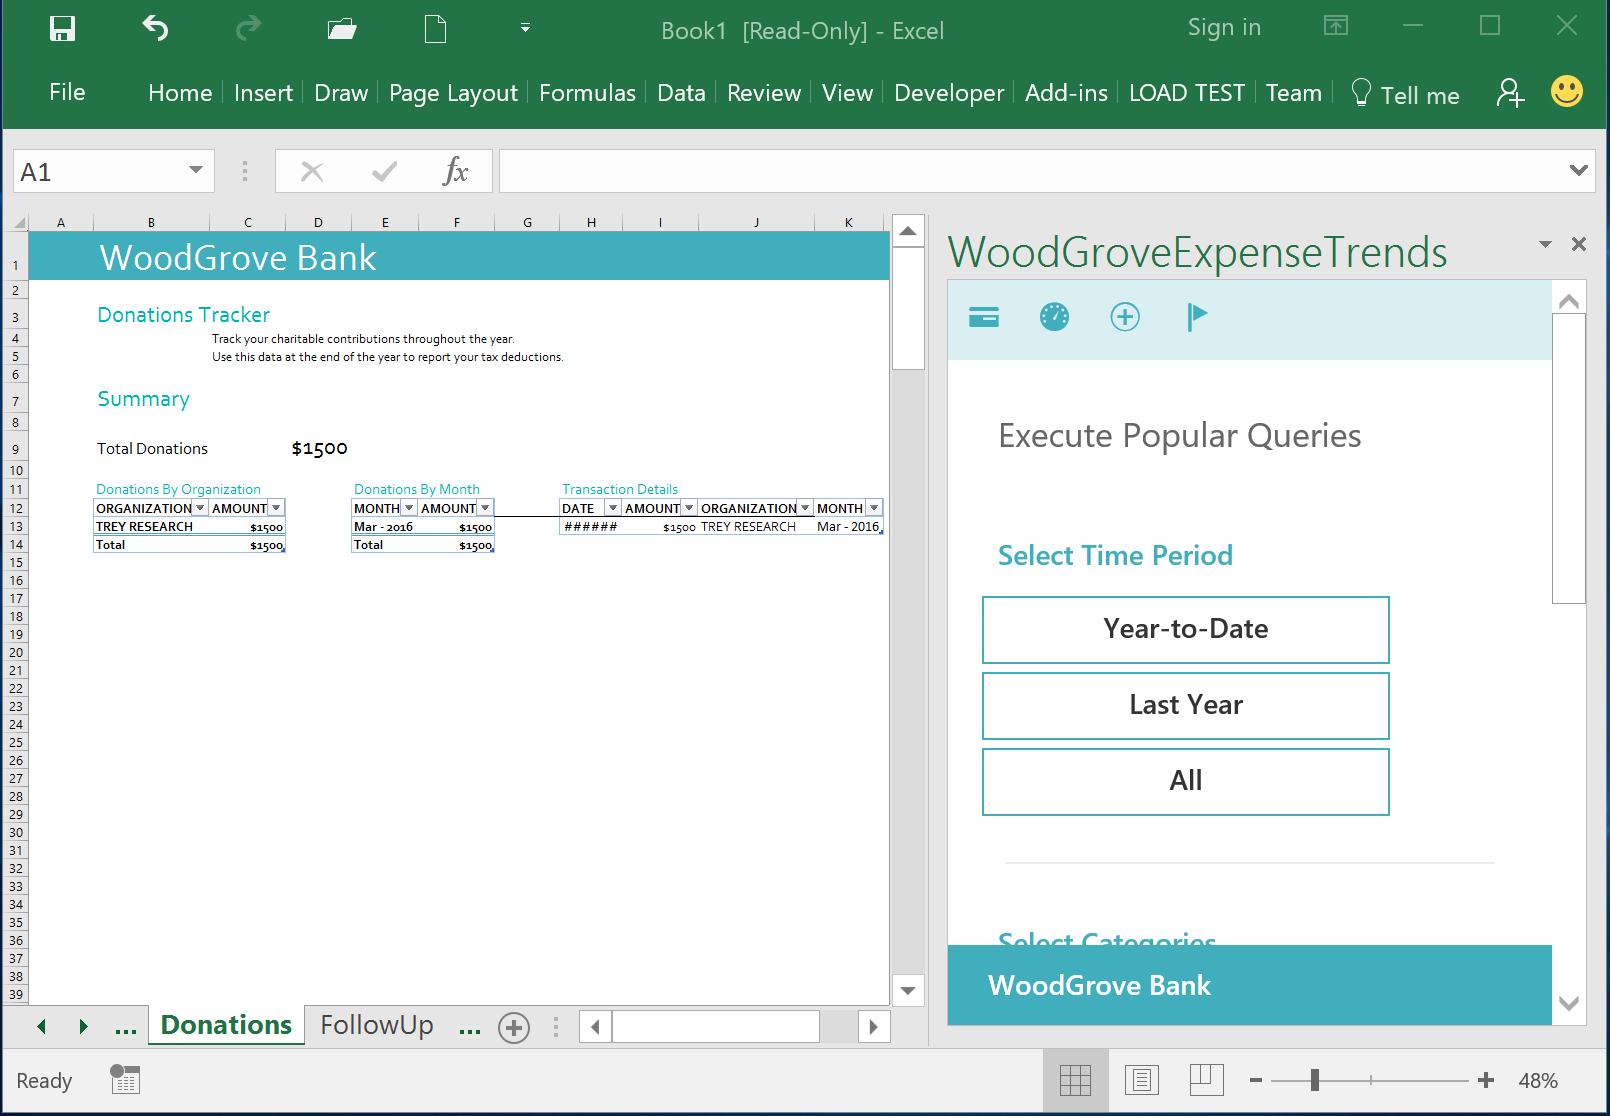 WoodGrove Bank Expense Trends Add-in - Donations Tracker